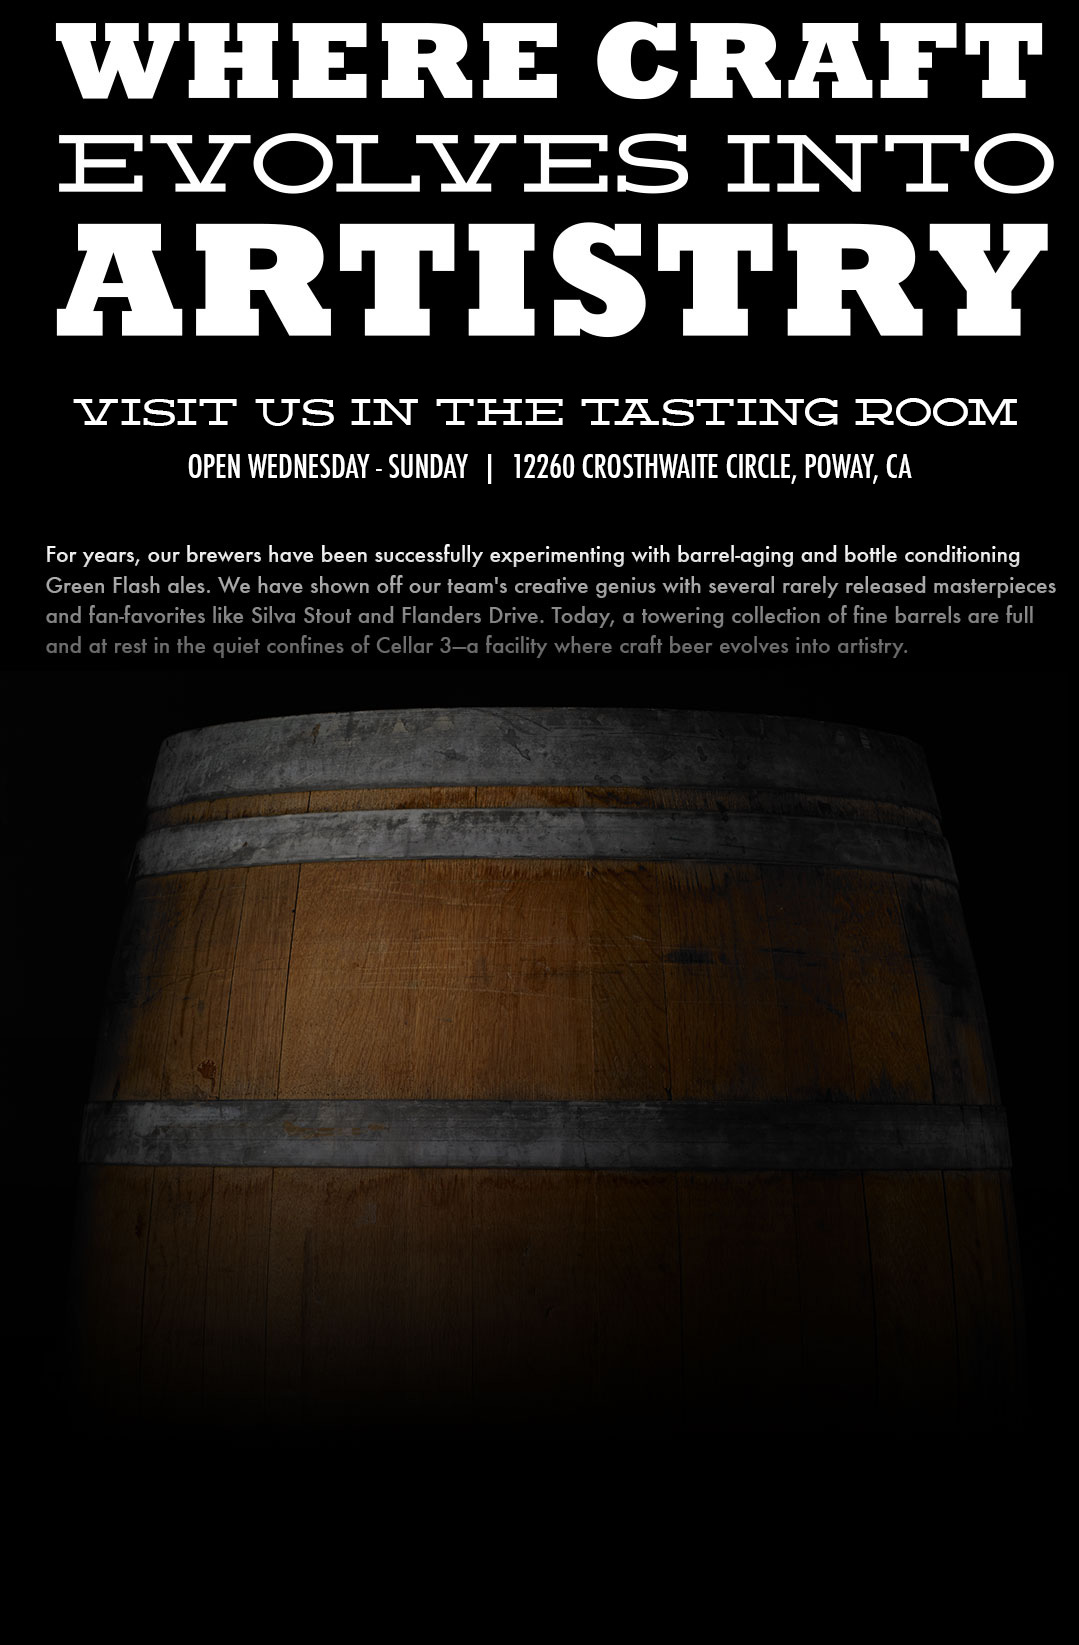 Where craft evolves into artistry. Tasting room now open. Wednesday - Sunday, Noon - 8pm. 12260 Crosthwaite Circle, Poway, CA. For years, our brewers have been successfully experimenting with barrel-aging and bottle conditioning Green Flash ales. We have shown off our team's creatie genius with several rarely released masterpieces and fan-favorites like Silva Stout and Flanders Drive. Today, a towerig collection of fine barrels are full and at rest in the quiet confines of Cellar 3-a facility where craft beer evolves into artistry.